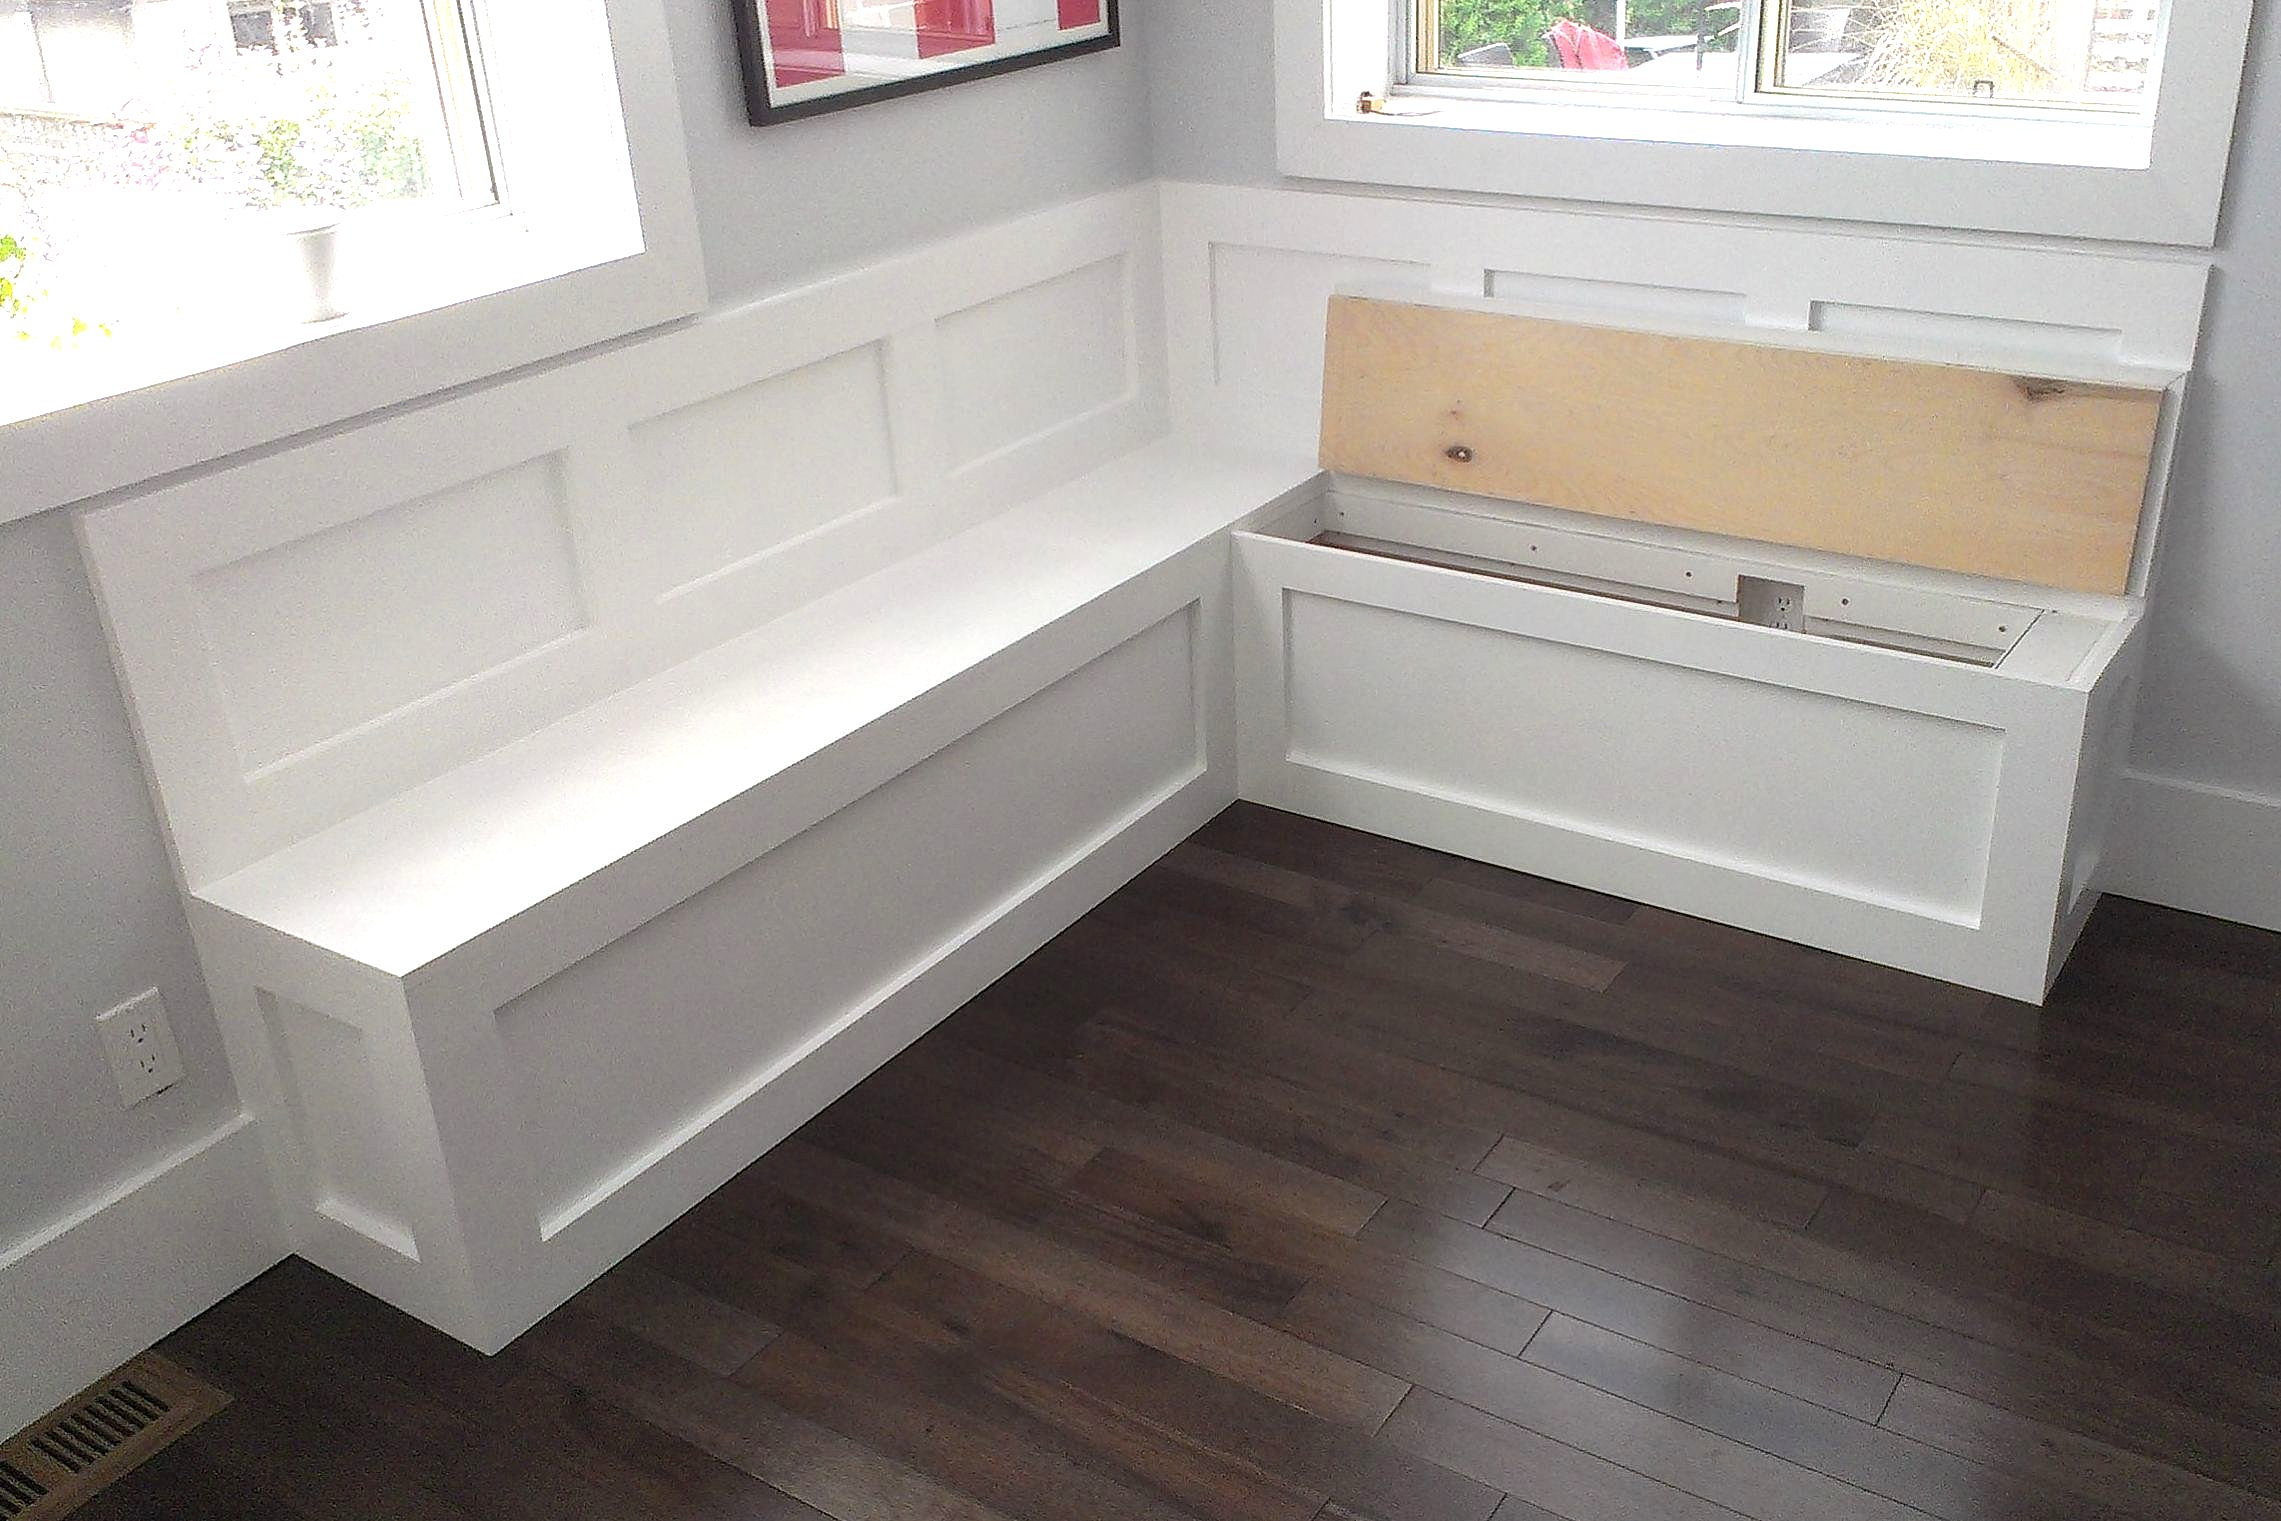 Co. - Finish Carpentry. Carpentry In Toronto Banquette w. Storage